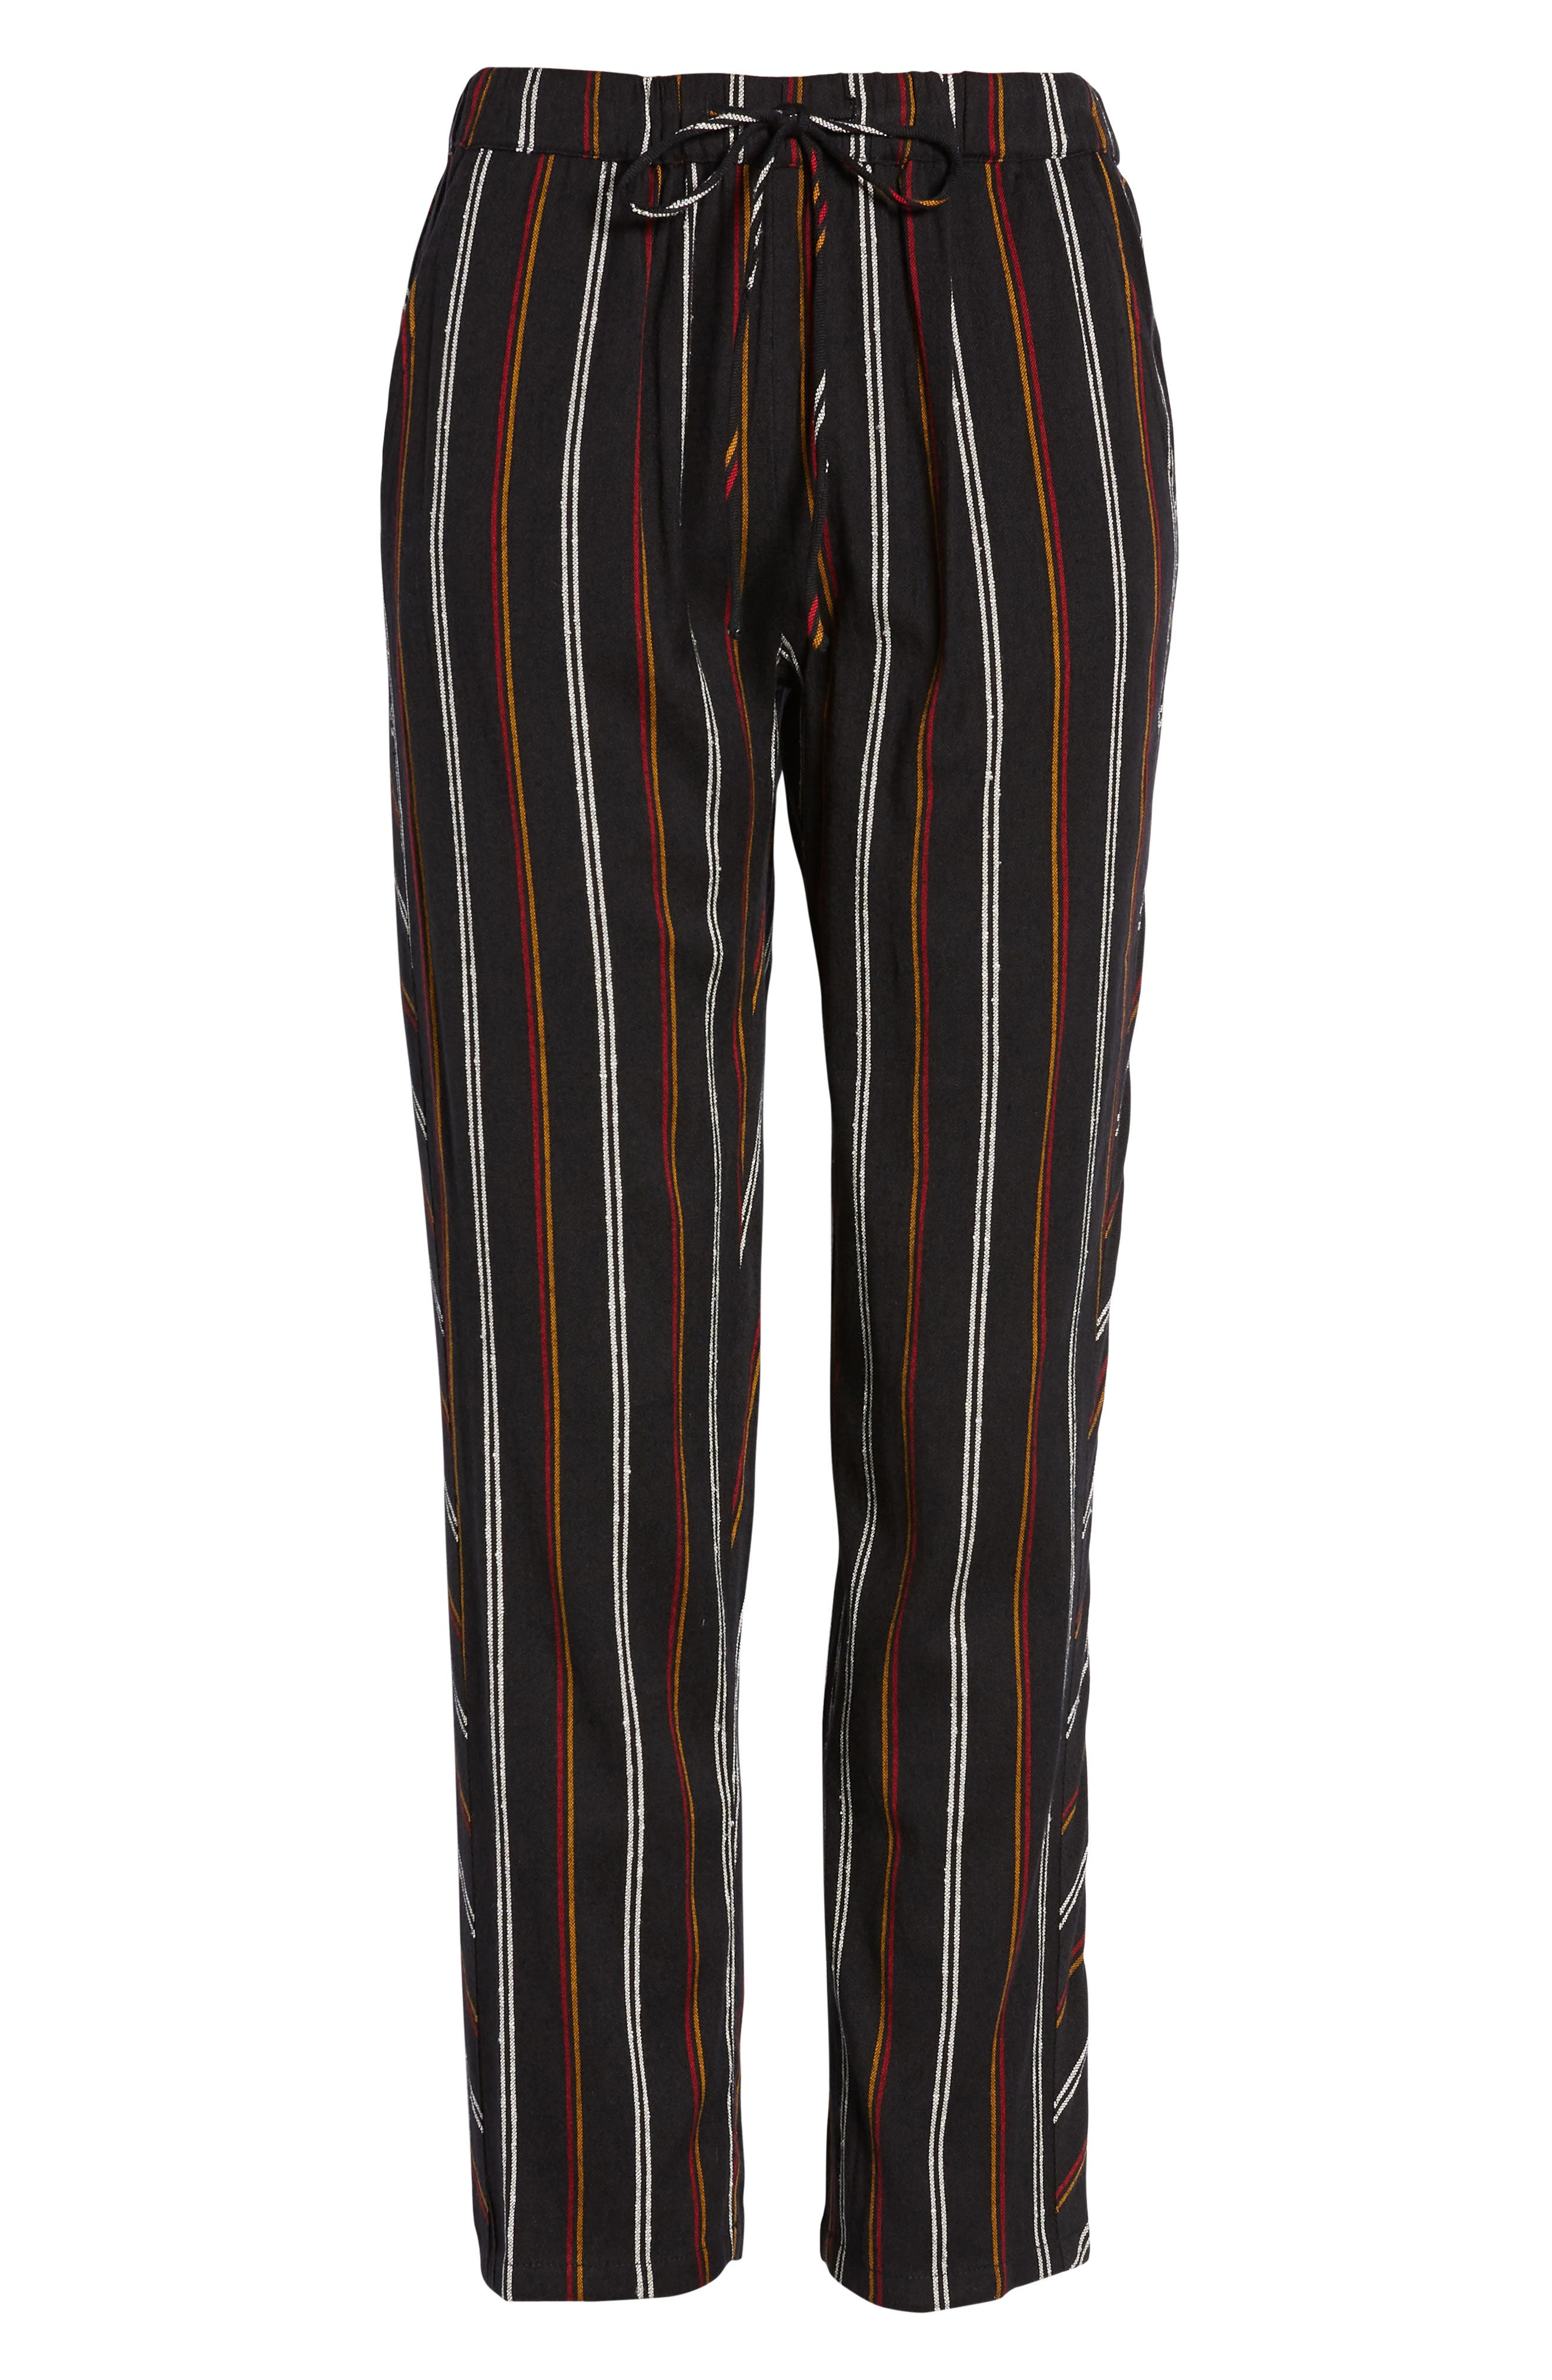 So Pro Pinstripe Pants,                             Alternate thumbnail 4, color,                             BLACK